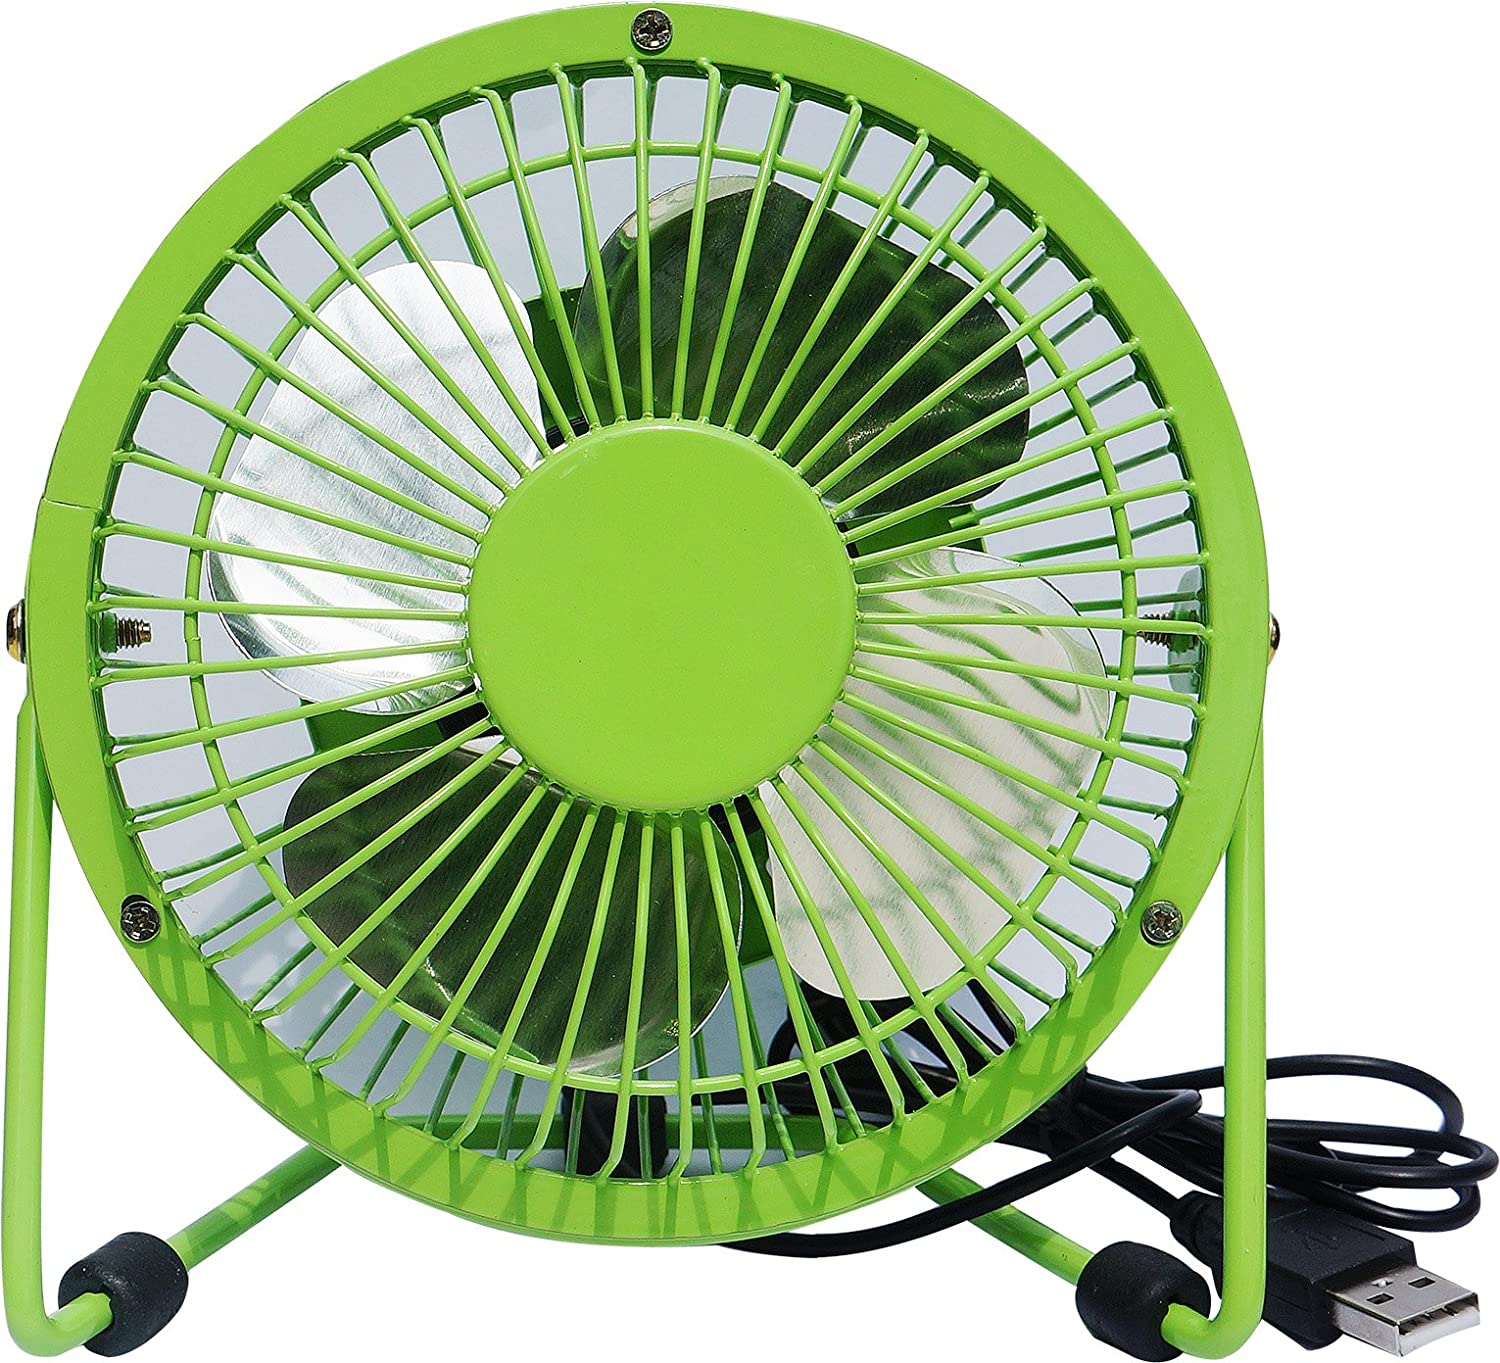 """Mini 4 Metal Portable Fans with USB Electric Cablel Personal Fans for Table Laptop Room Office or Mobile Power Bank (4"""", Black) YHLCSQ"""